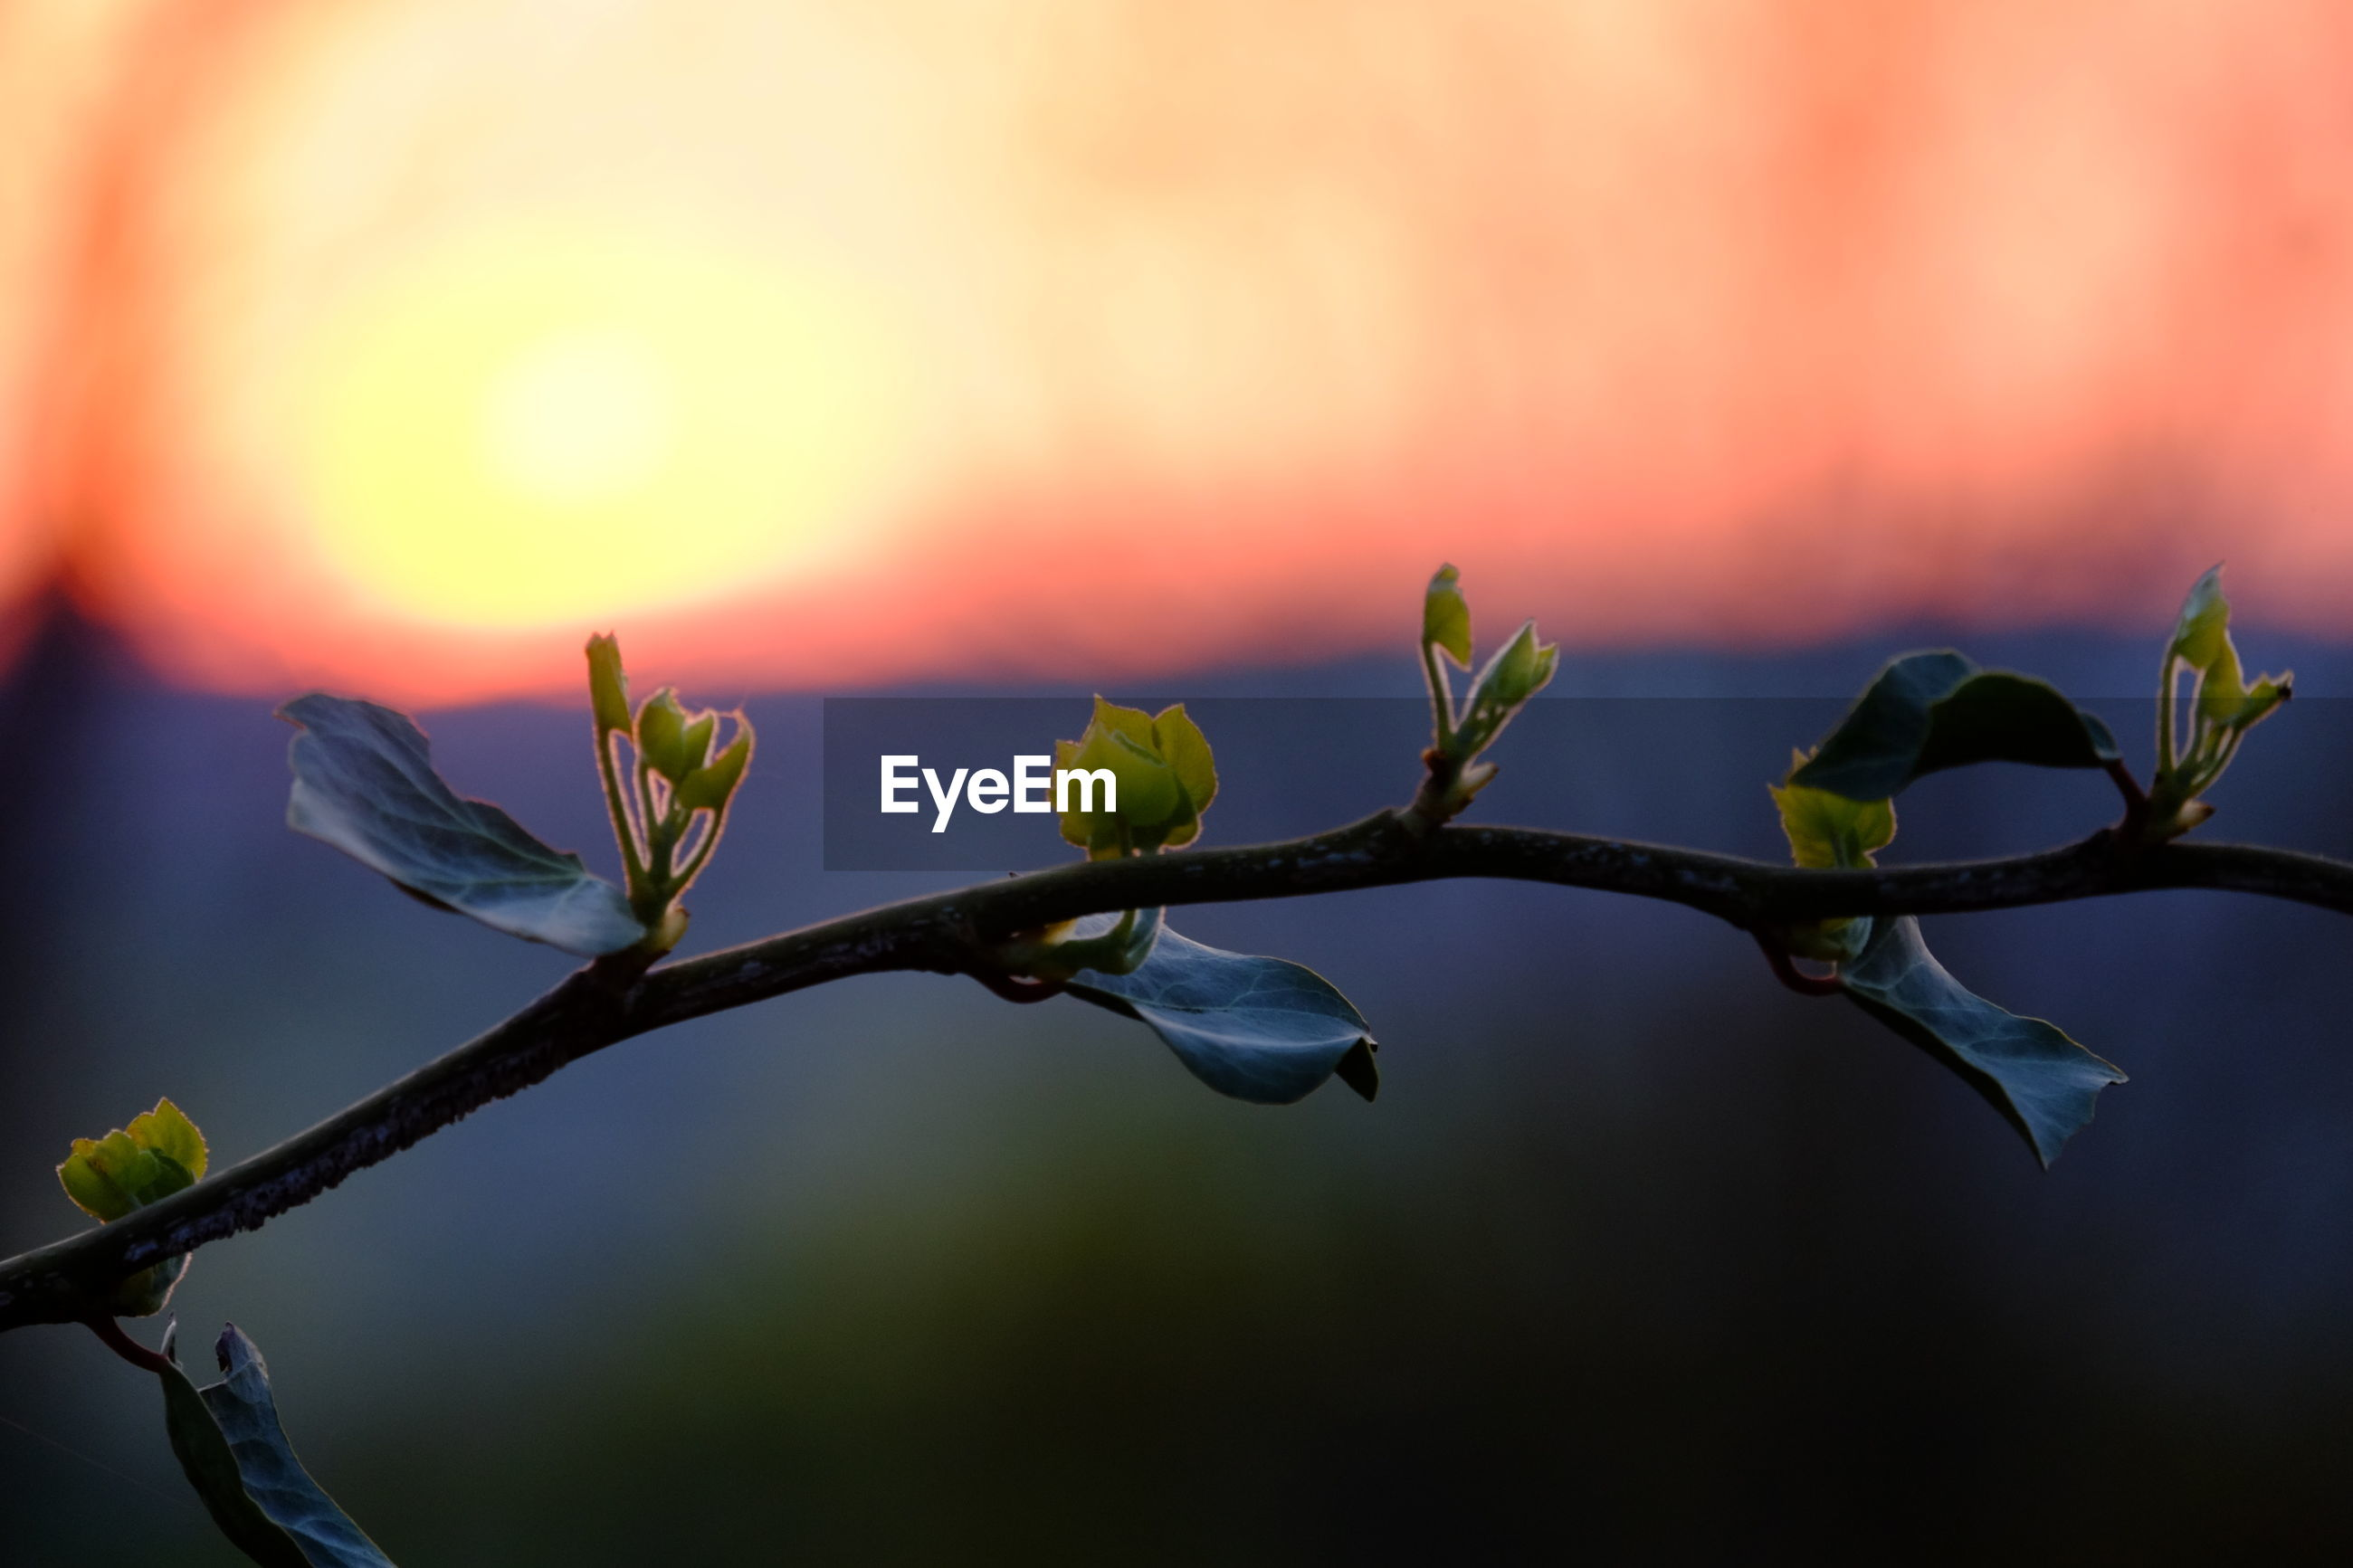 CLOSE-UP OF PLANT GROWING AGAINST SKY DURING SUNSET